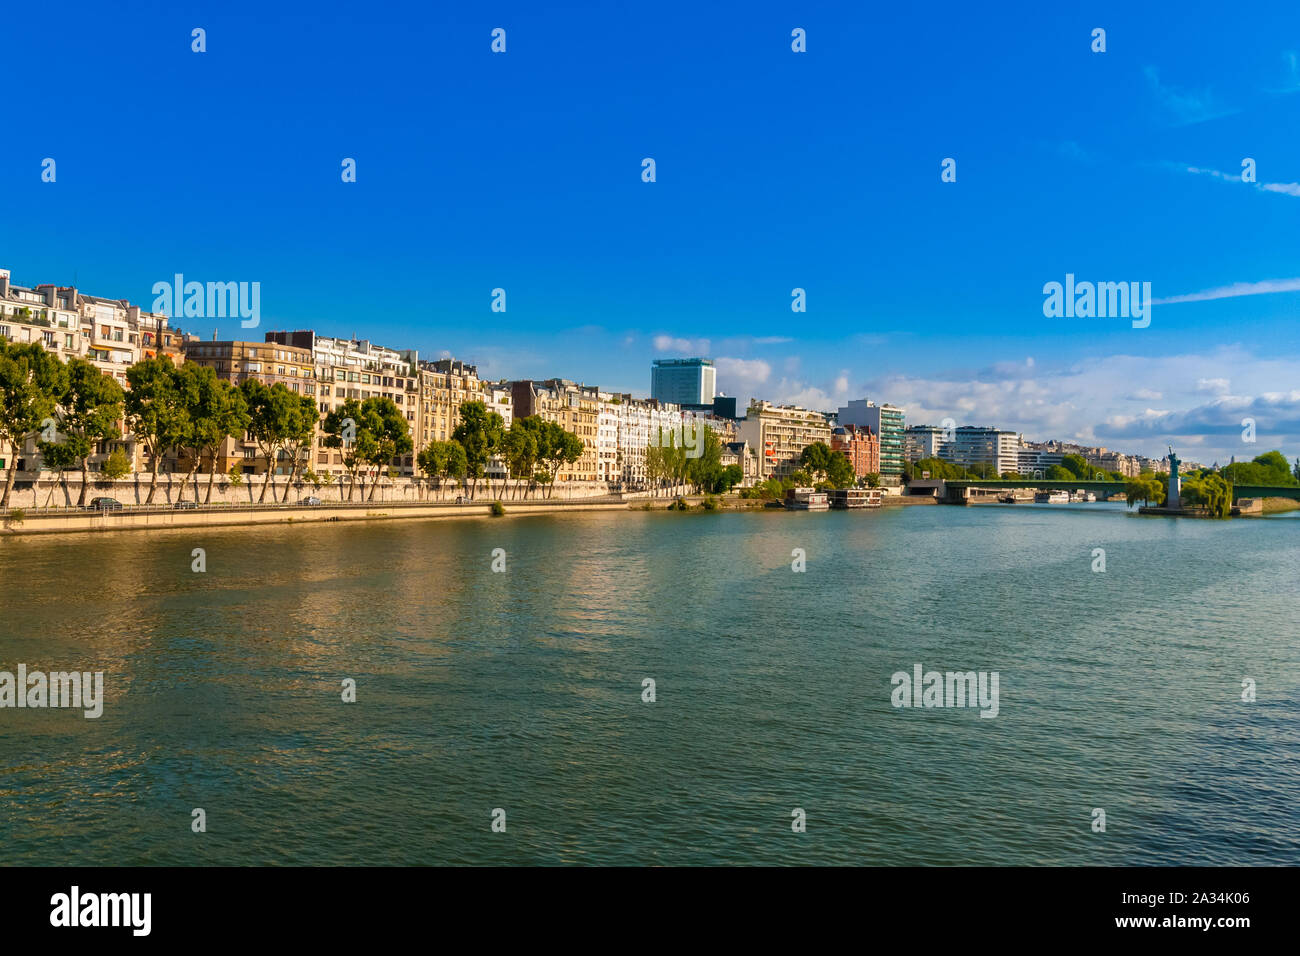 Beautiful panoramic view of the Quai Louis-Blériot, a quay alongside the Seine river in the 16th arrondissement of Paris, France on a nice day with a... Stock Photo